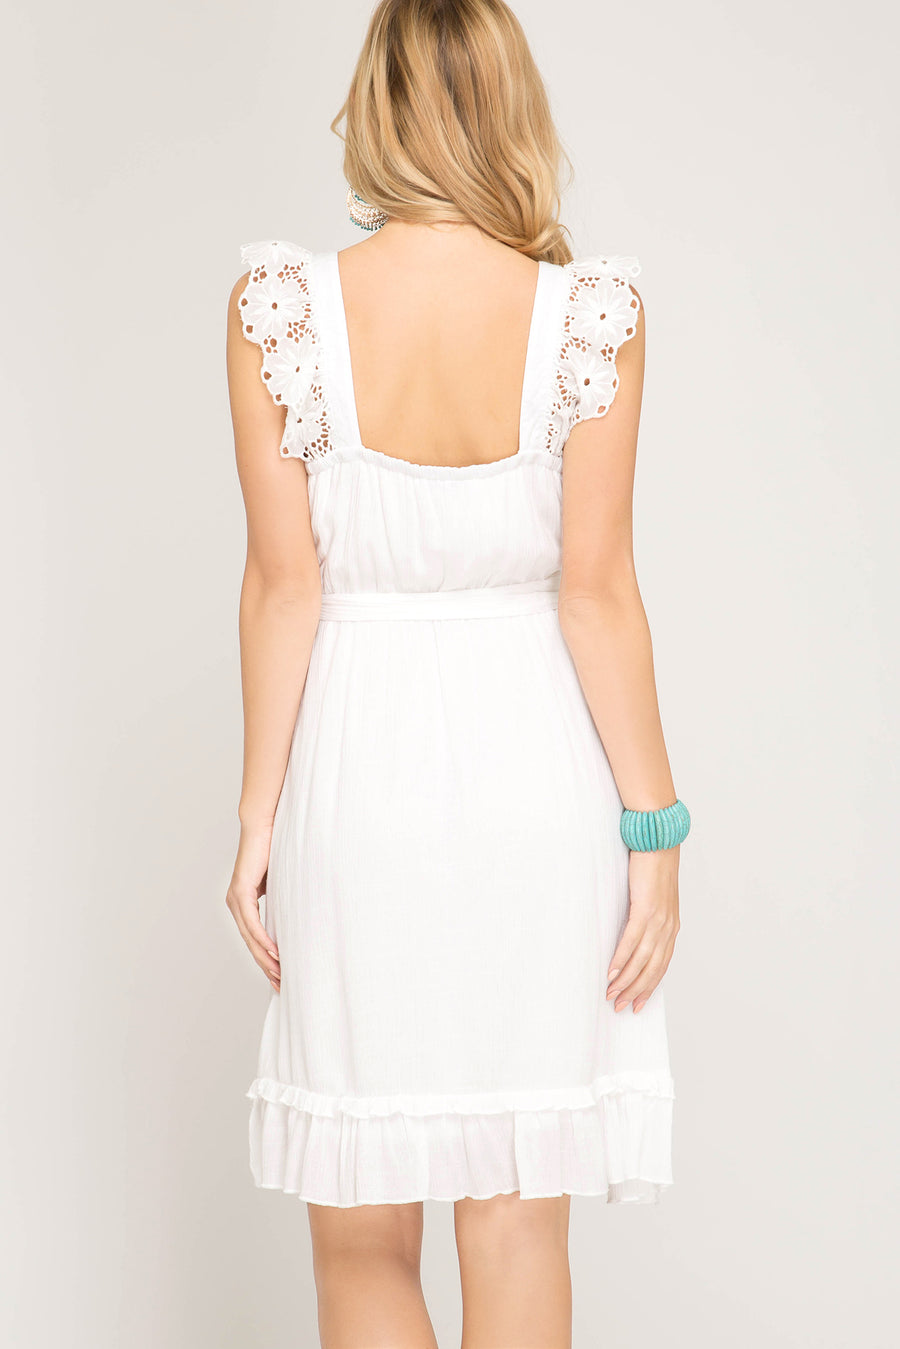 She + Sky Sleeveless surplice dress with scalloped eyelet trim